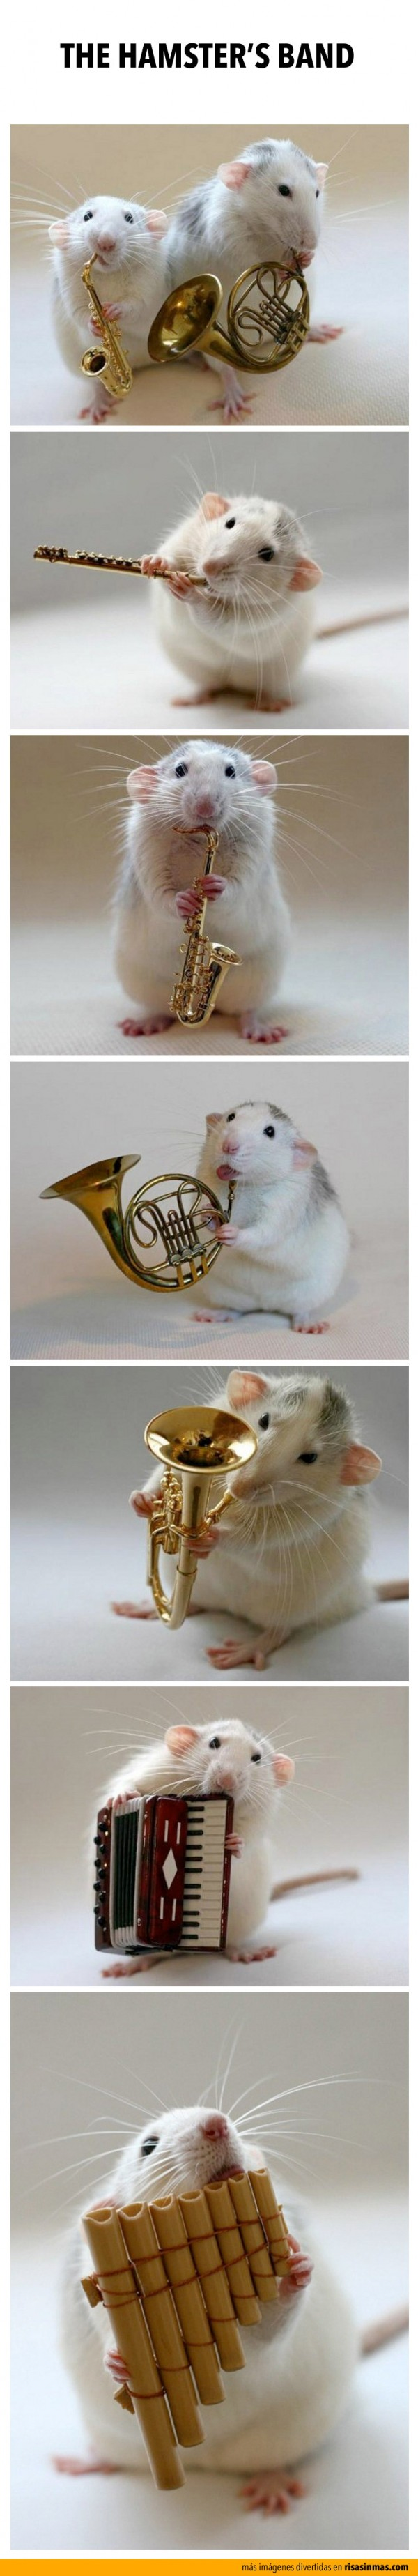 The Hamster's Band